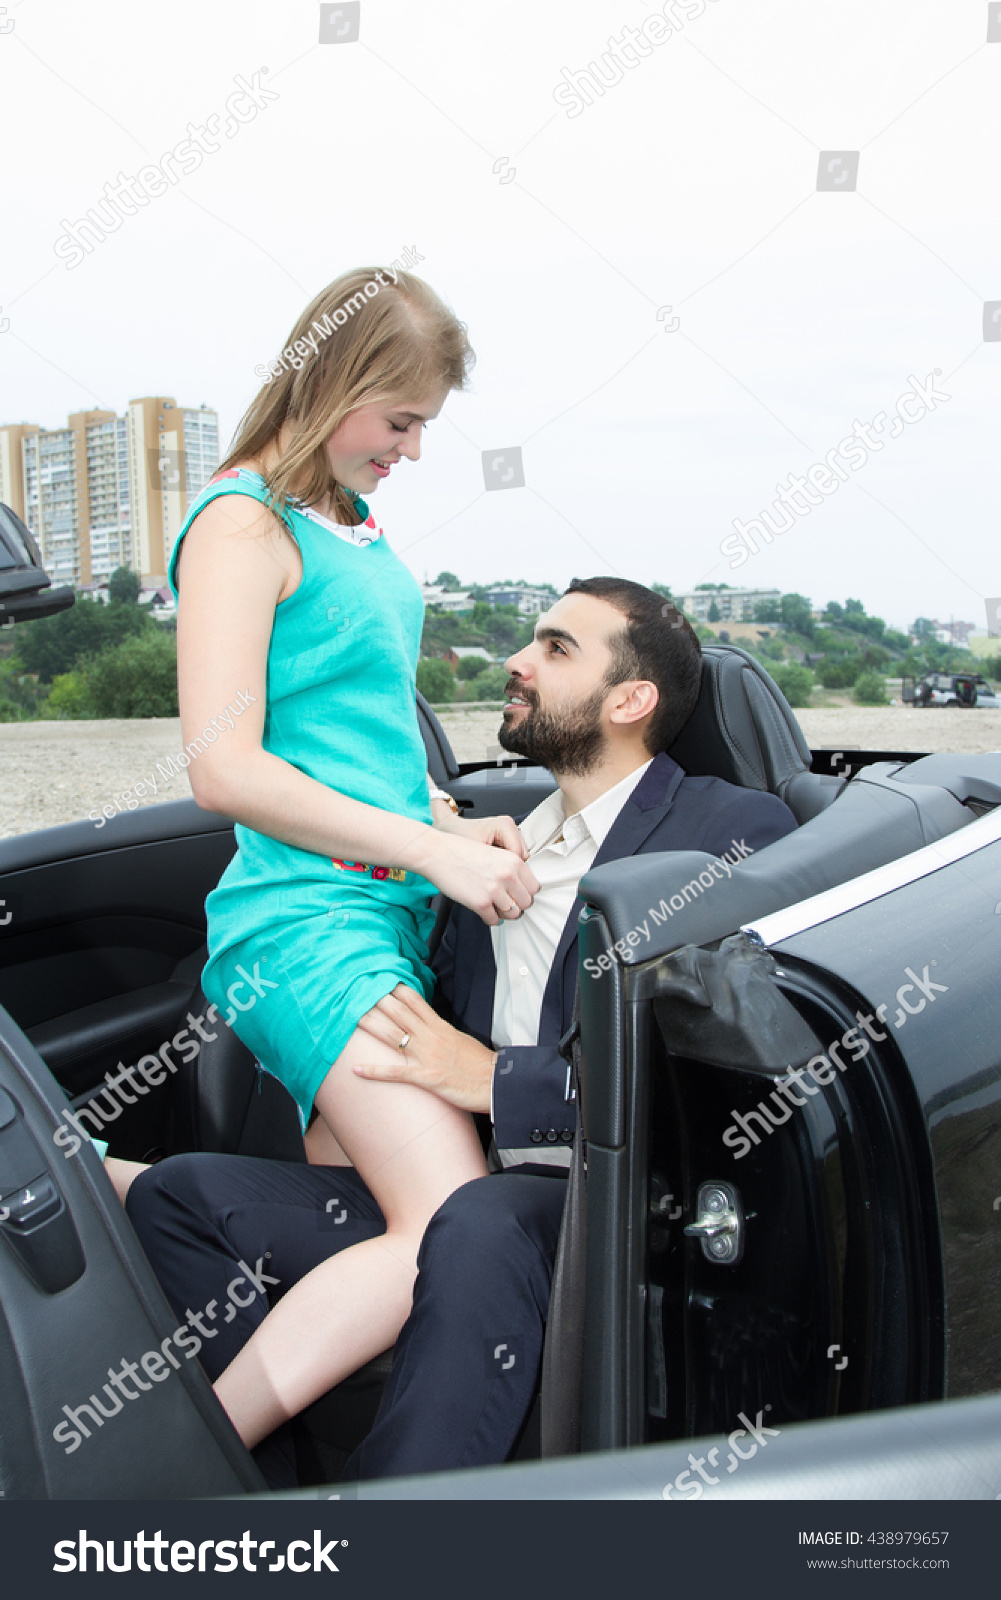 Salon Convertible Two Lovers Meet Salon Convertible Stock Photo Edit Now 438979657